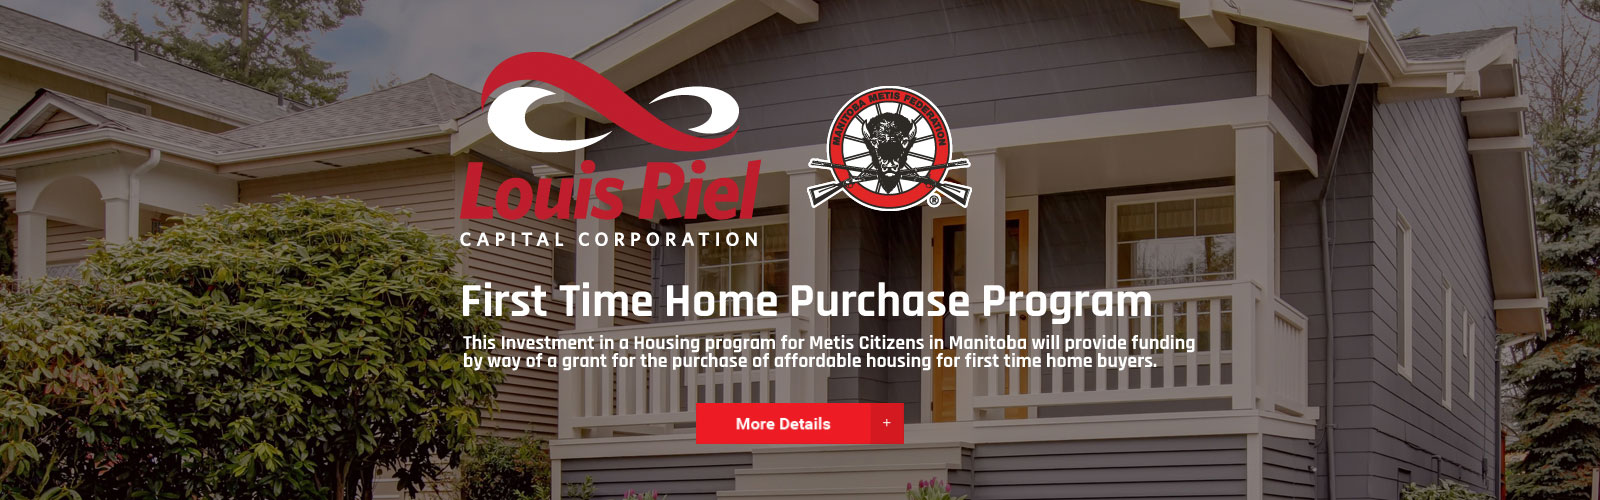 LRCC First Time Home Purchase Program